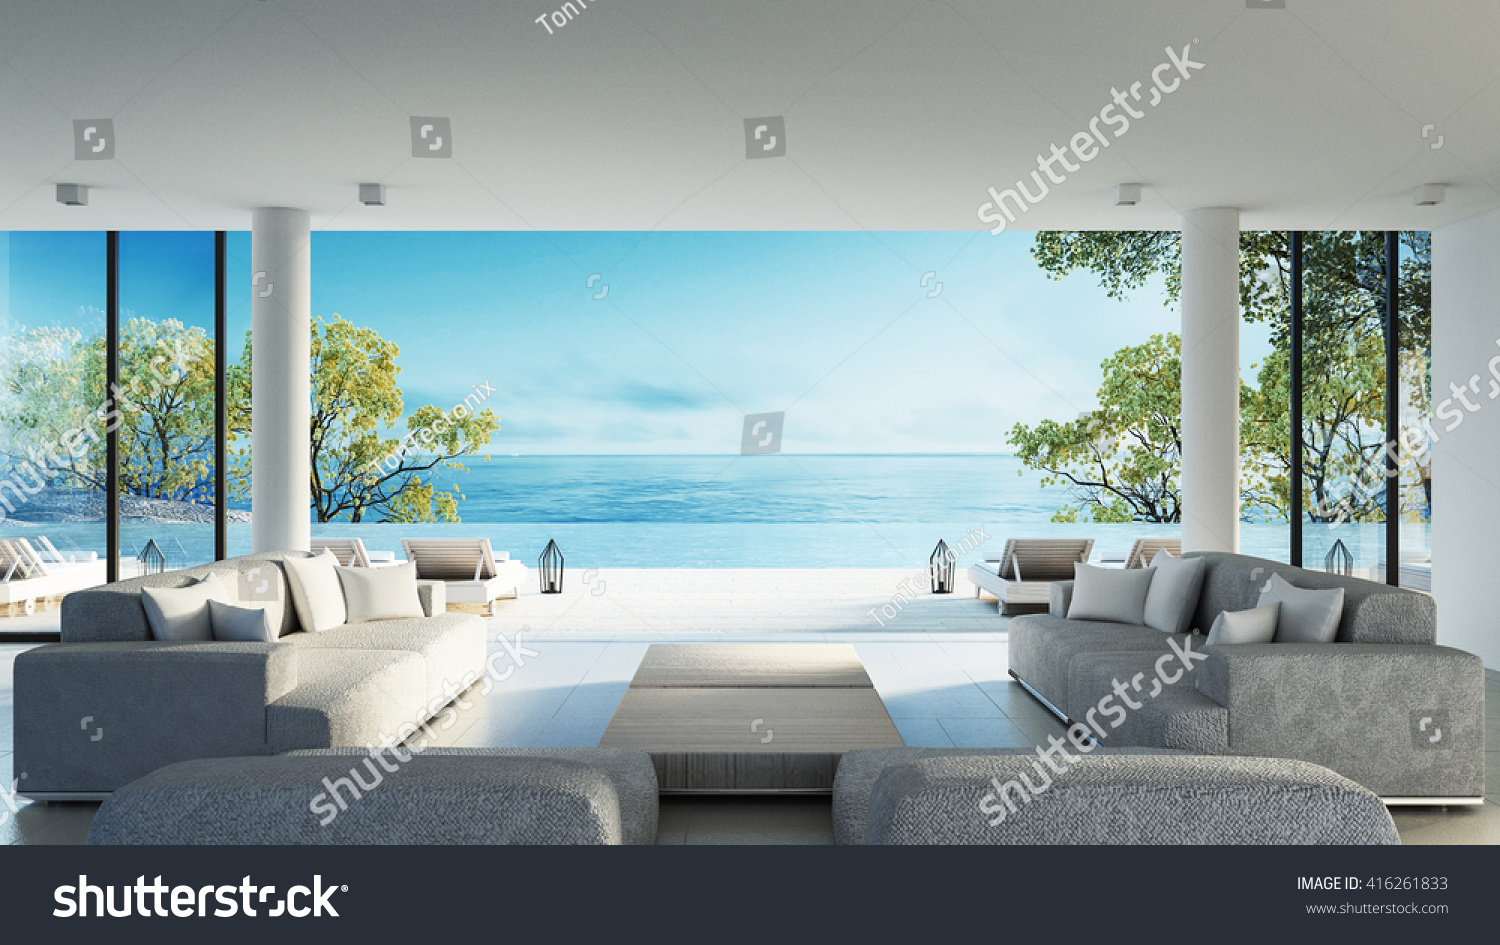 Awesome Beach Living On Sea View / 3d Rendering